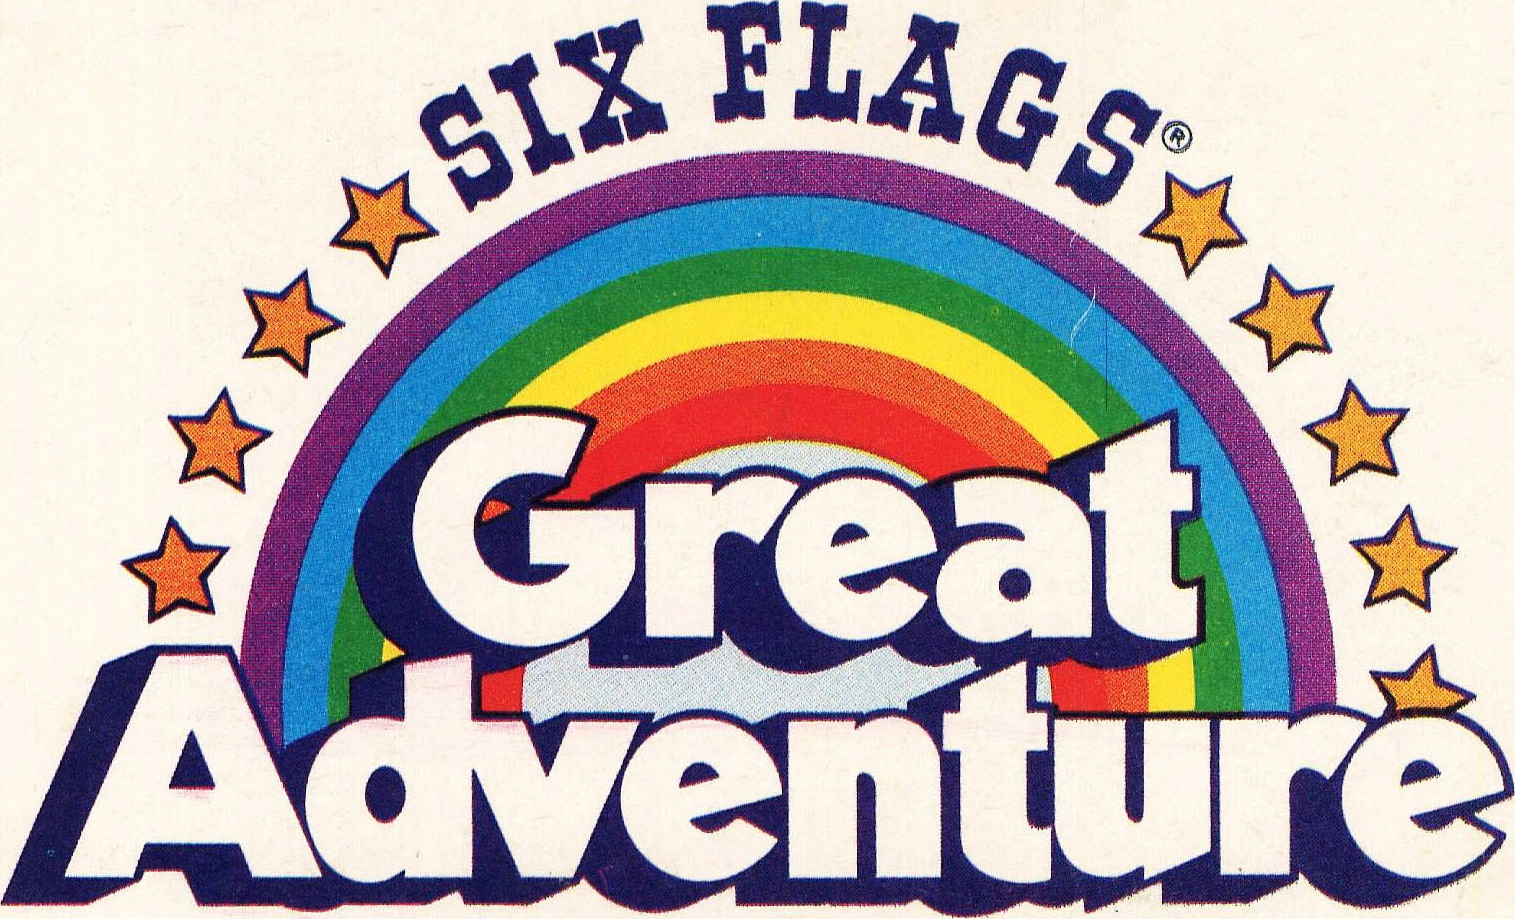 from Tatum six flags great adventure gay